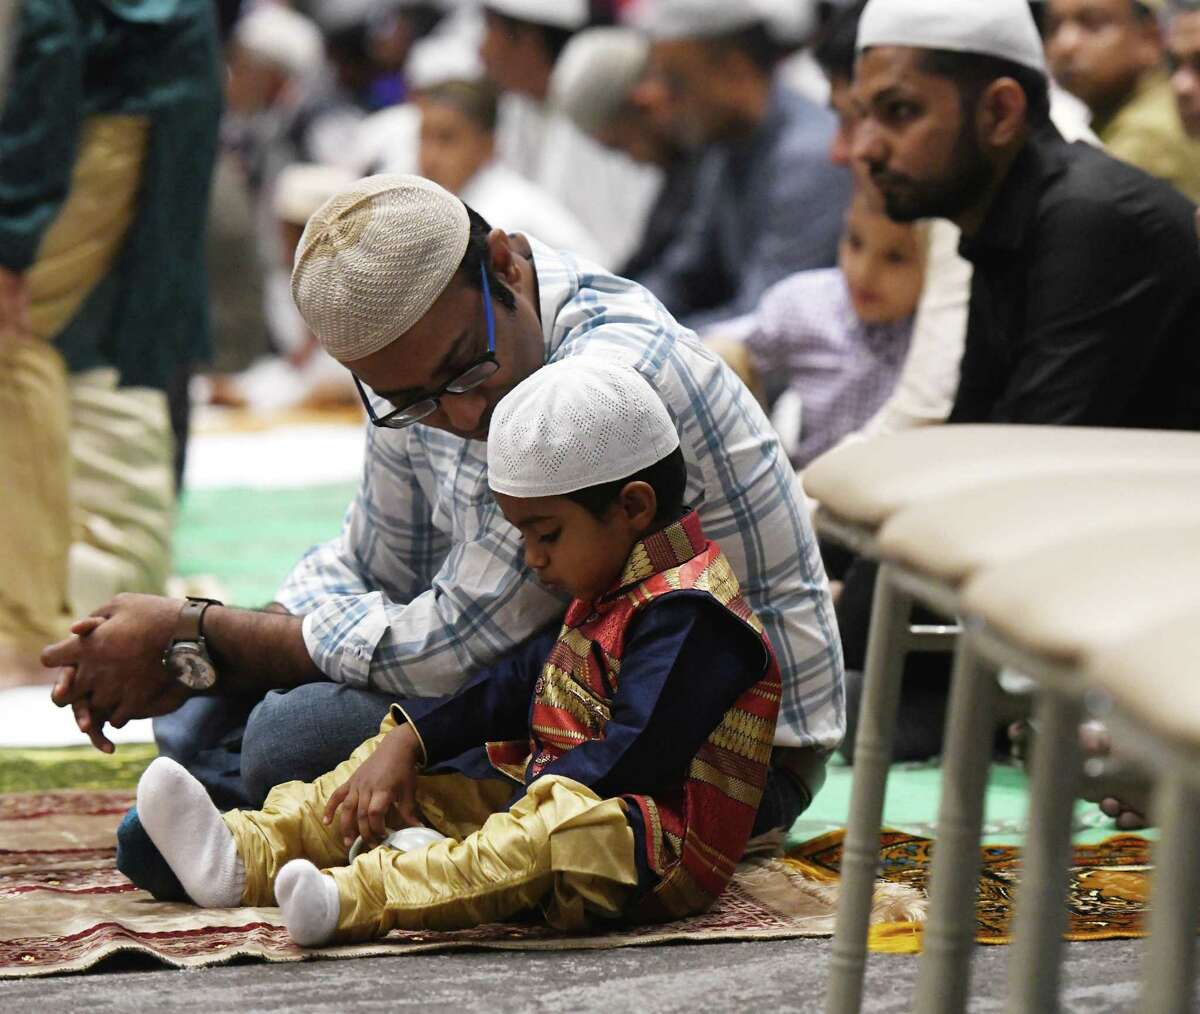 Stamford's Inayath Khan and his son Saffan Khan, 2, attend the Stamford Islamic Center's Eid al-Fitr celebration at the Stamford Italian Center in Stamford, Conn. Wednesday, June 5, 2019. The ceremony celebrated the breaking of the fast for the month of Ramadan with Salaah prayers, charity giving, and gifts for children.